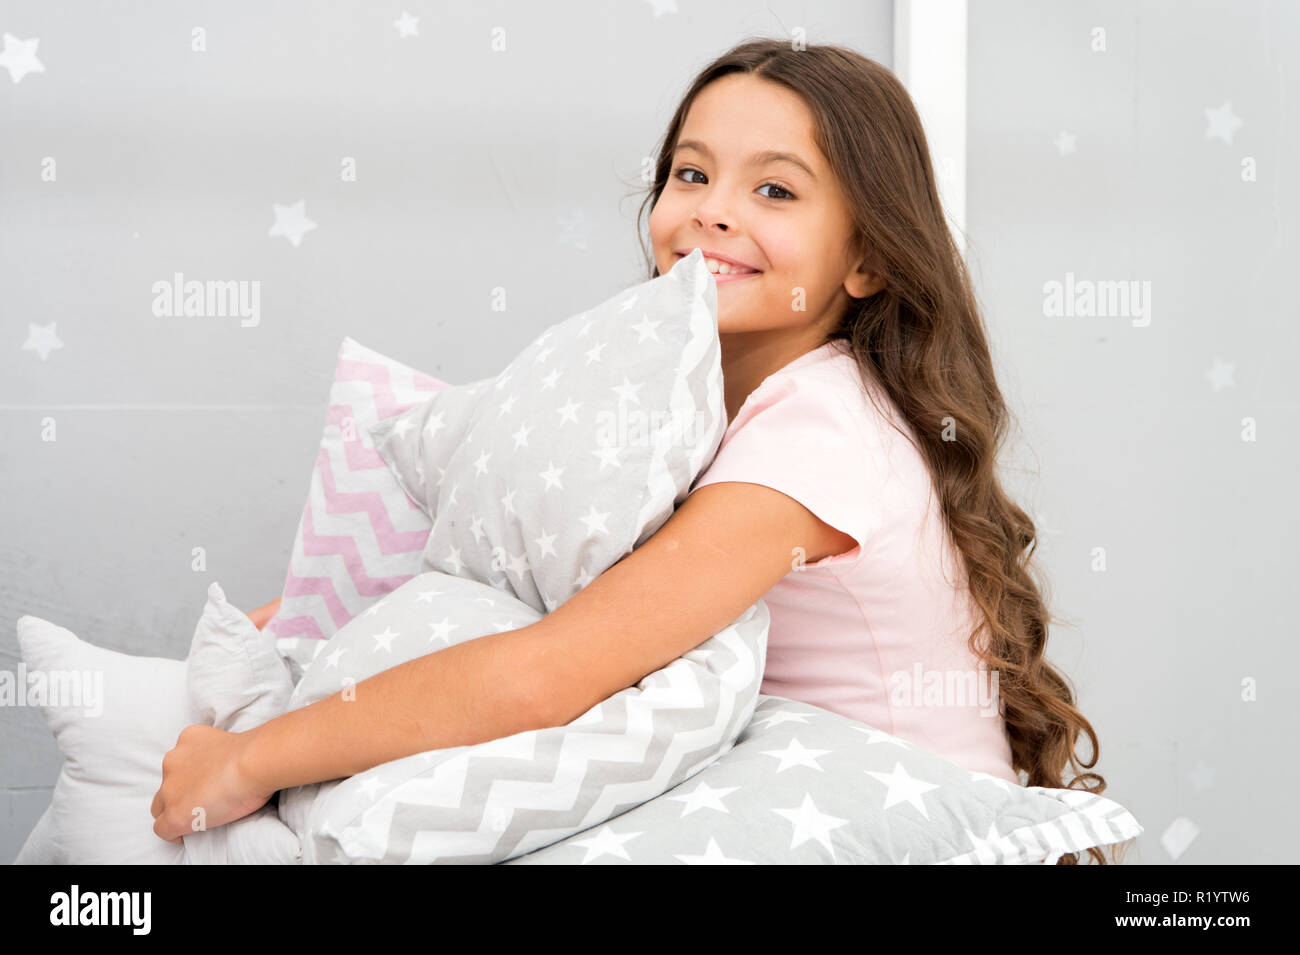 https www alamy com girl kid hug cute pillow cute kids pillows they will love to cuddle find decorative pillows and add fun to room happy childhood cozy home adorable cushions for your child room image224961666 html